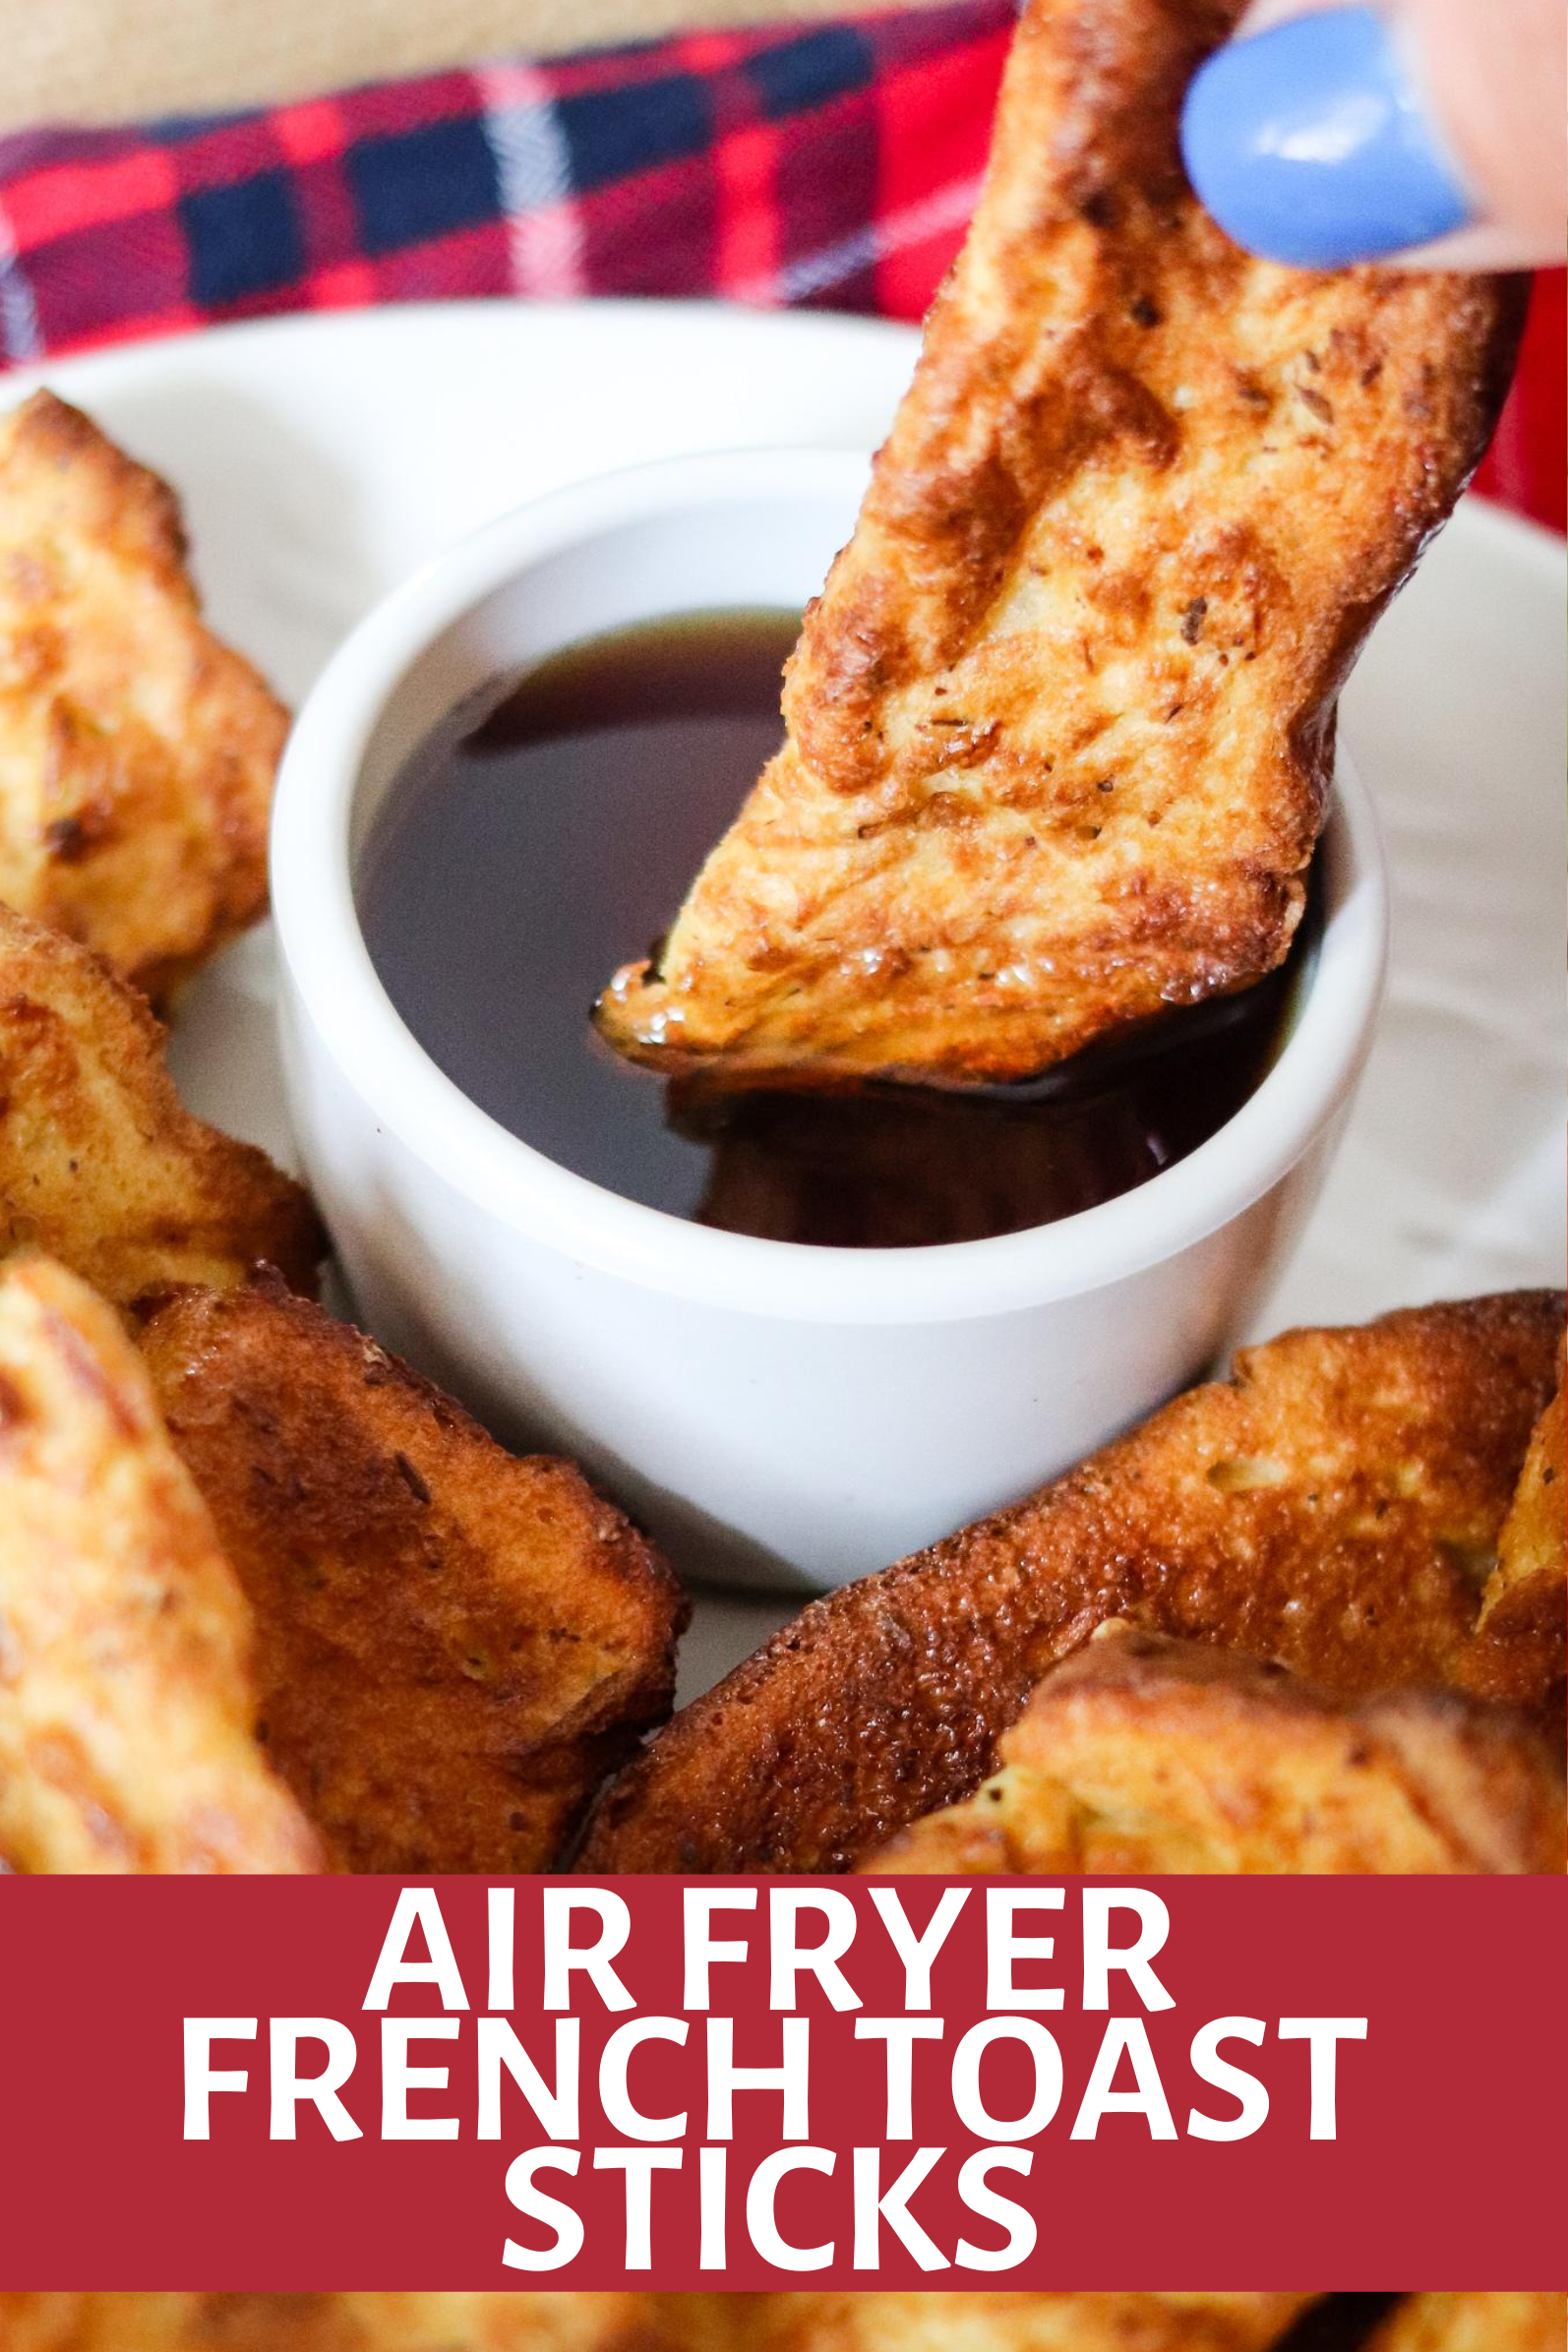 Homemade Air Fryer French Toast Sticks are so easy and delicious! Eat them fresh or freeze and reheat later for a quick breakfast! Directions for freezing and re-heating included!